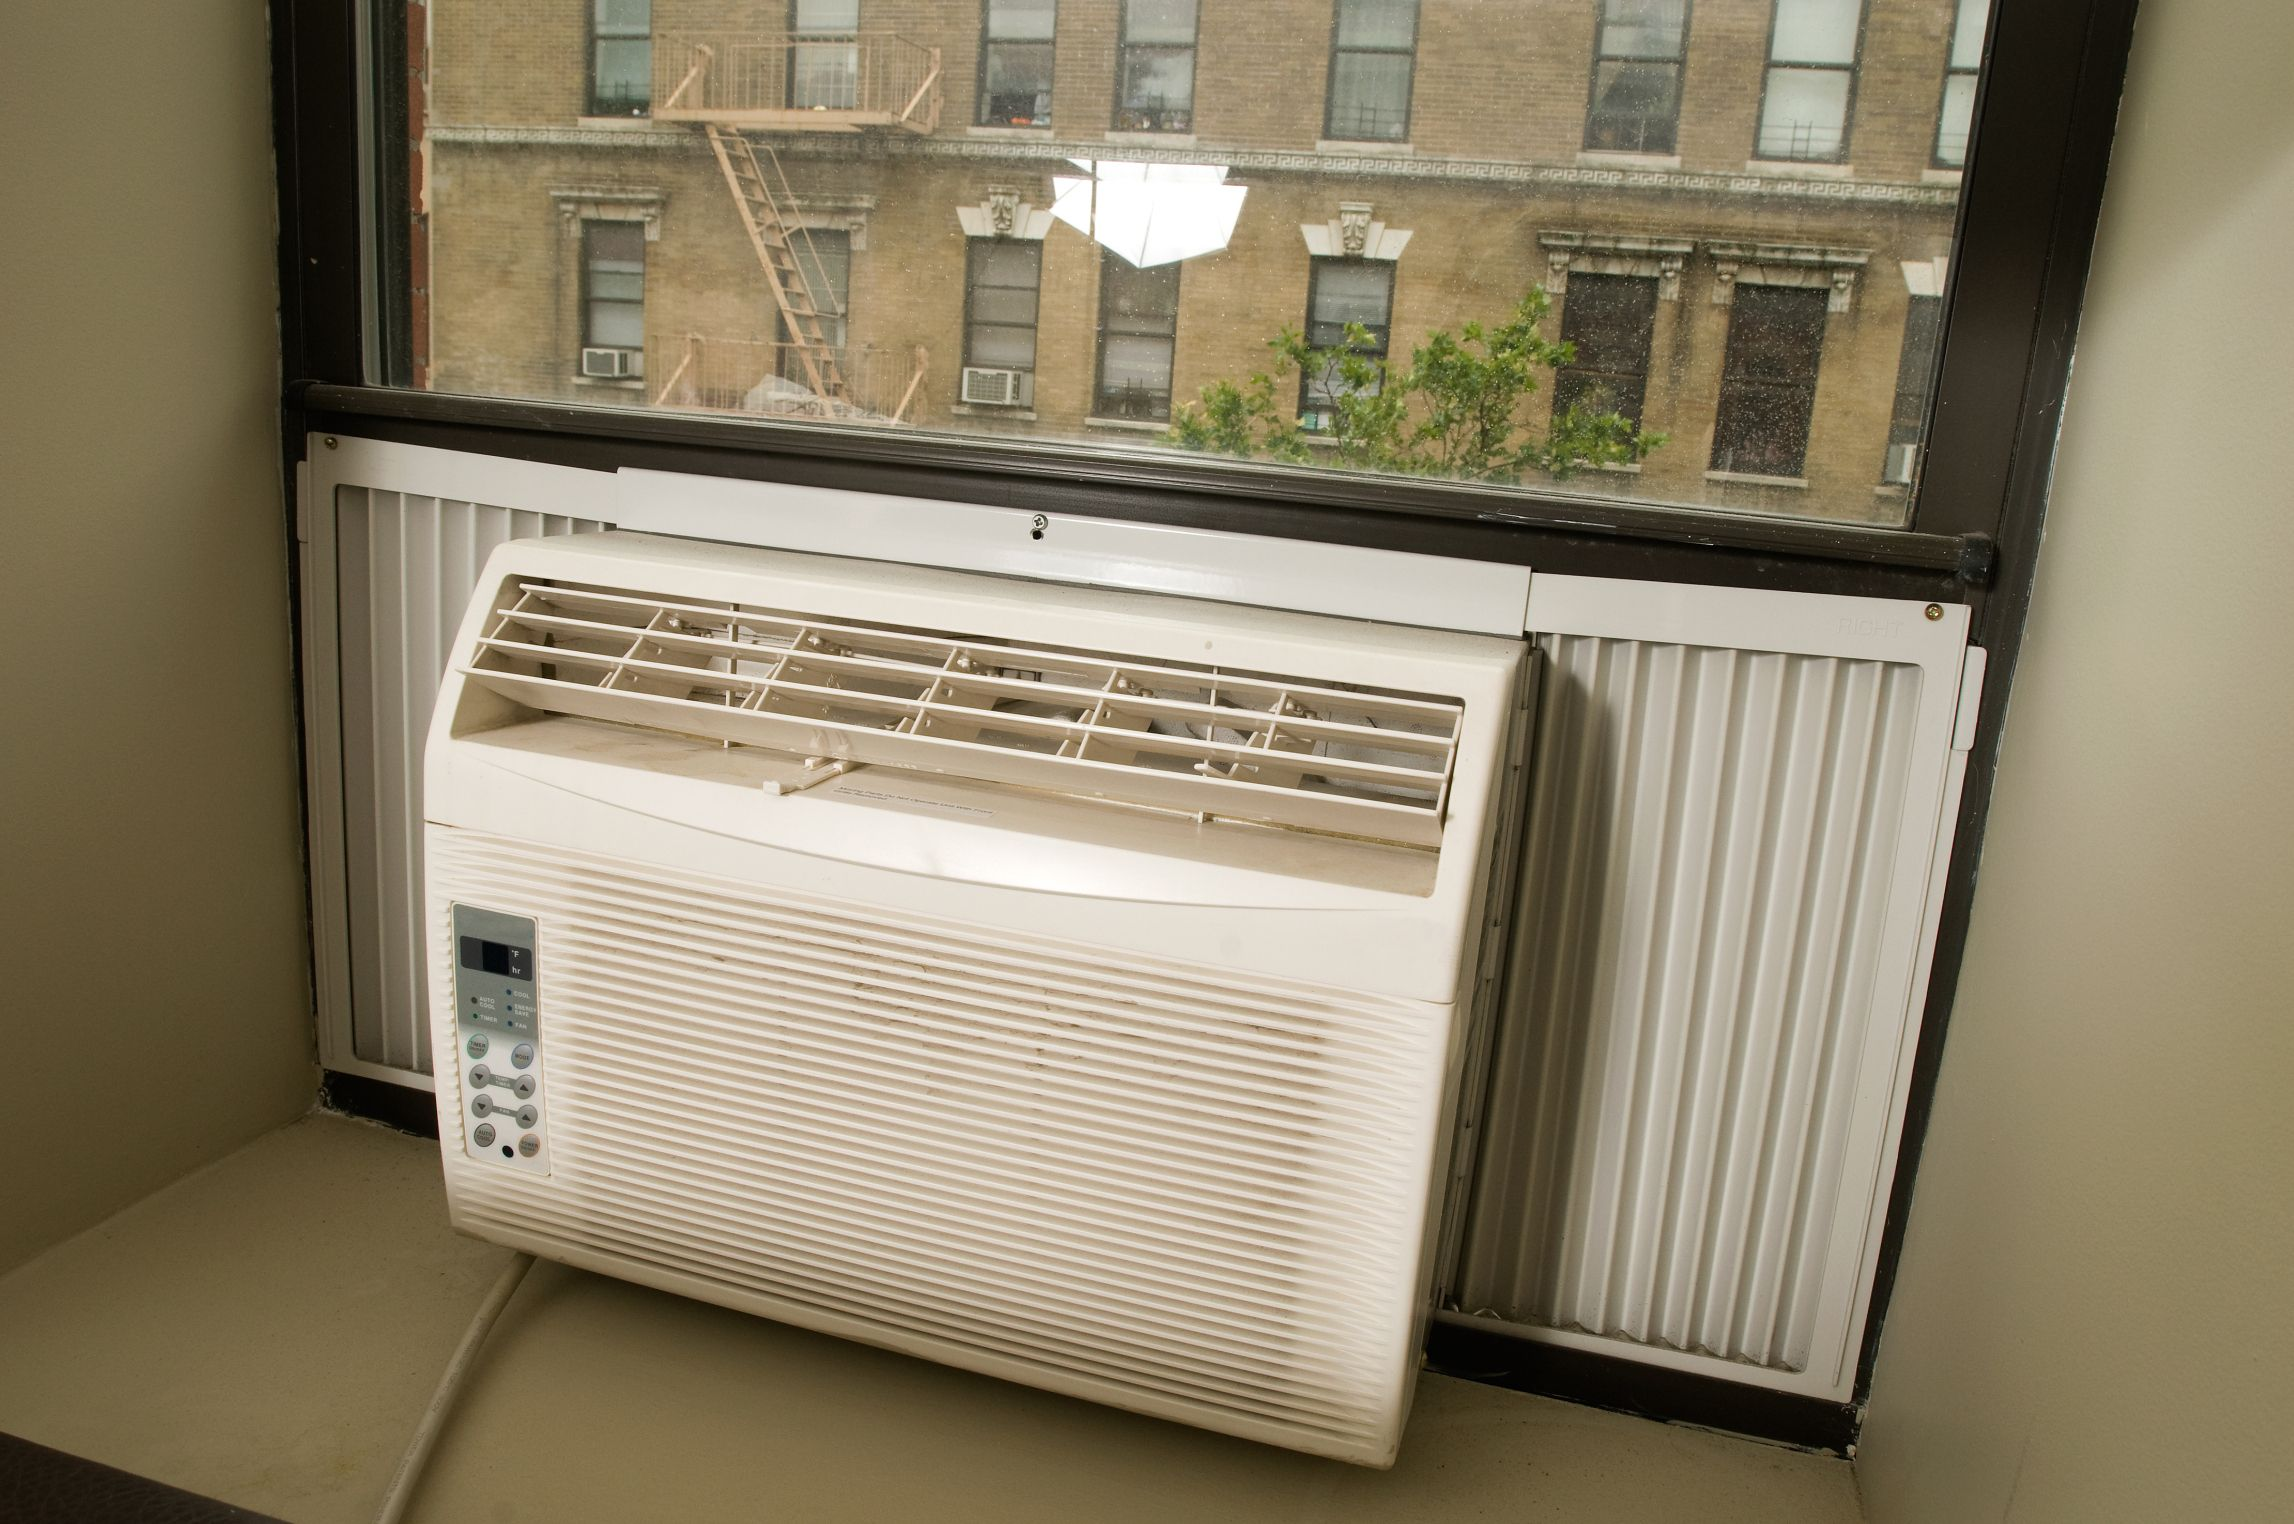 How To Make An Indoor Window Air Conditioner Cover Window Air